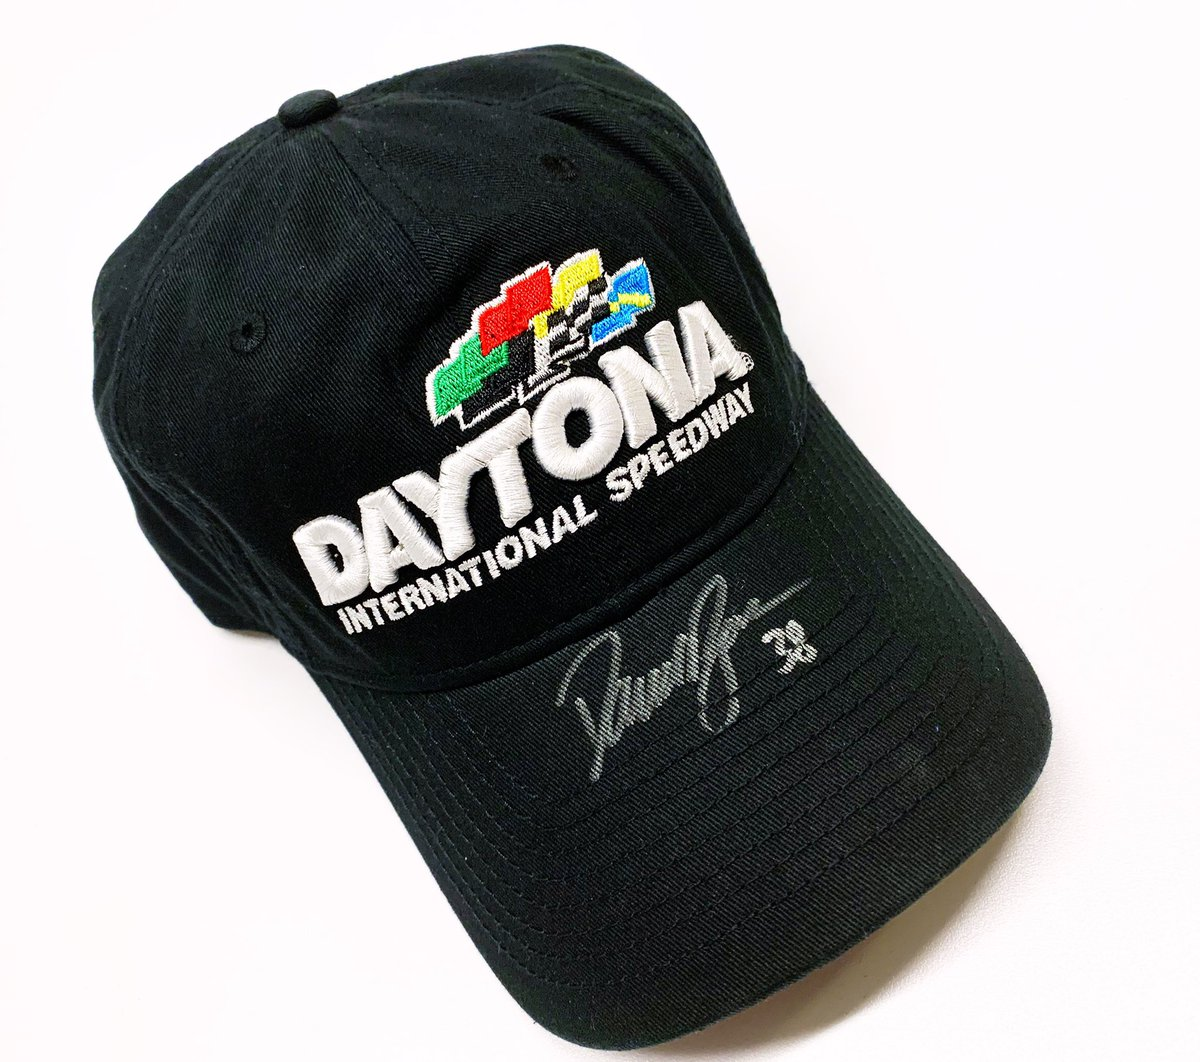 We had a great day out fishing on Lake Lloyd! RETWEET for your chance to win this DAYTONA hat signed by @DavidRagan!  We'll pick a random winner on Monday!